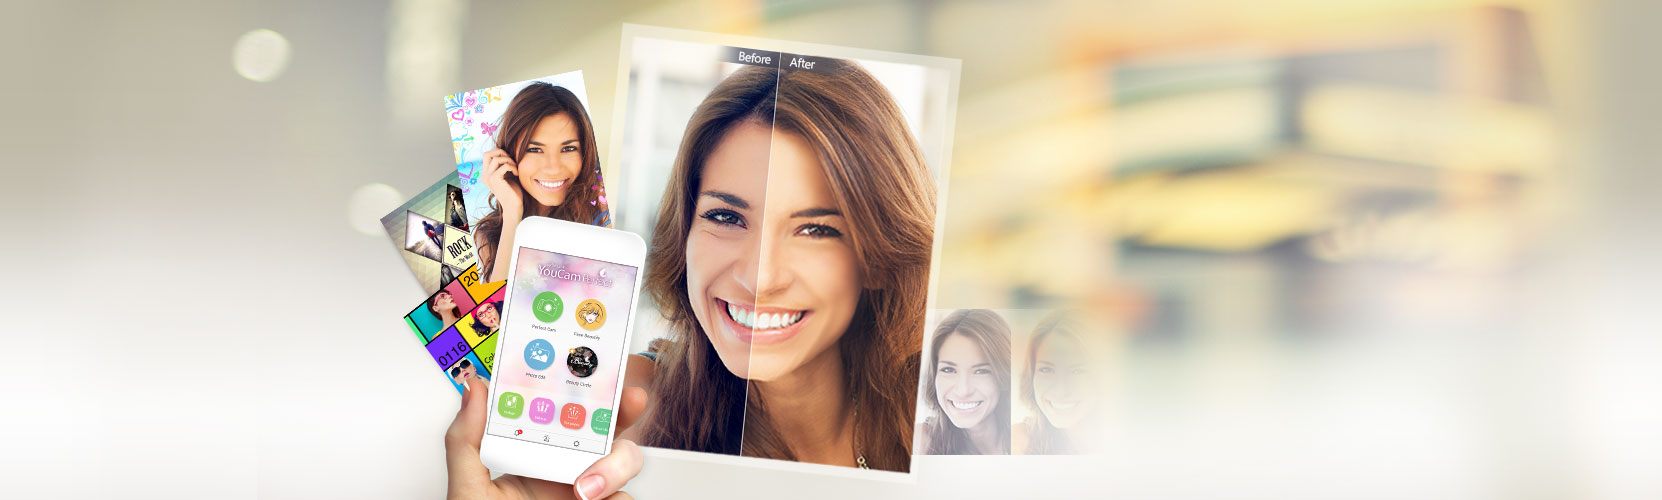 Get More Right Swipes: Creating the Perfect Tinder Profile